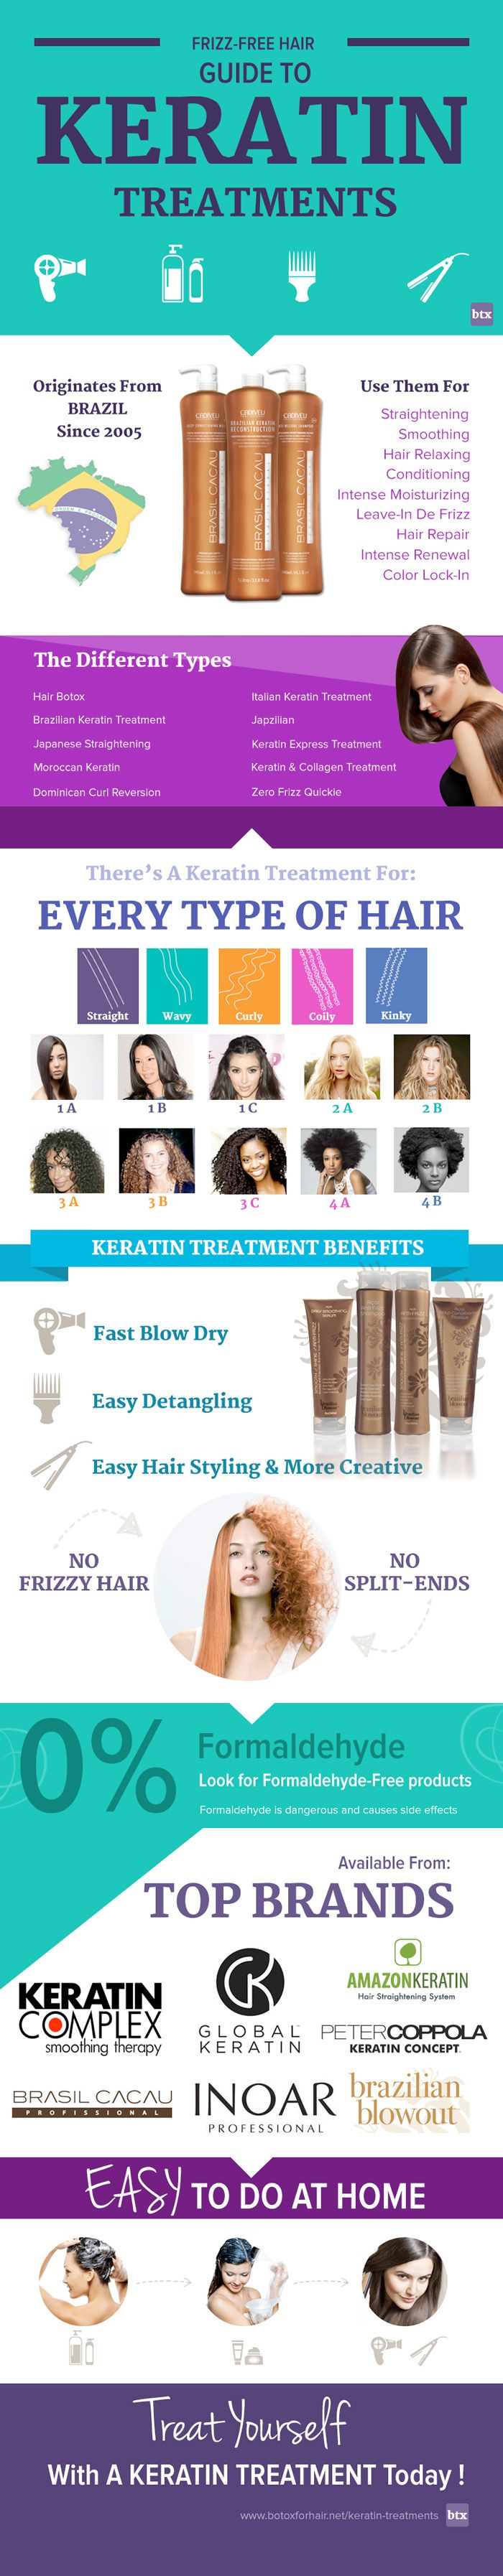 keratin treatment infographic